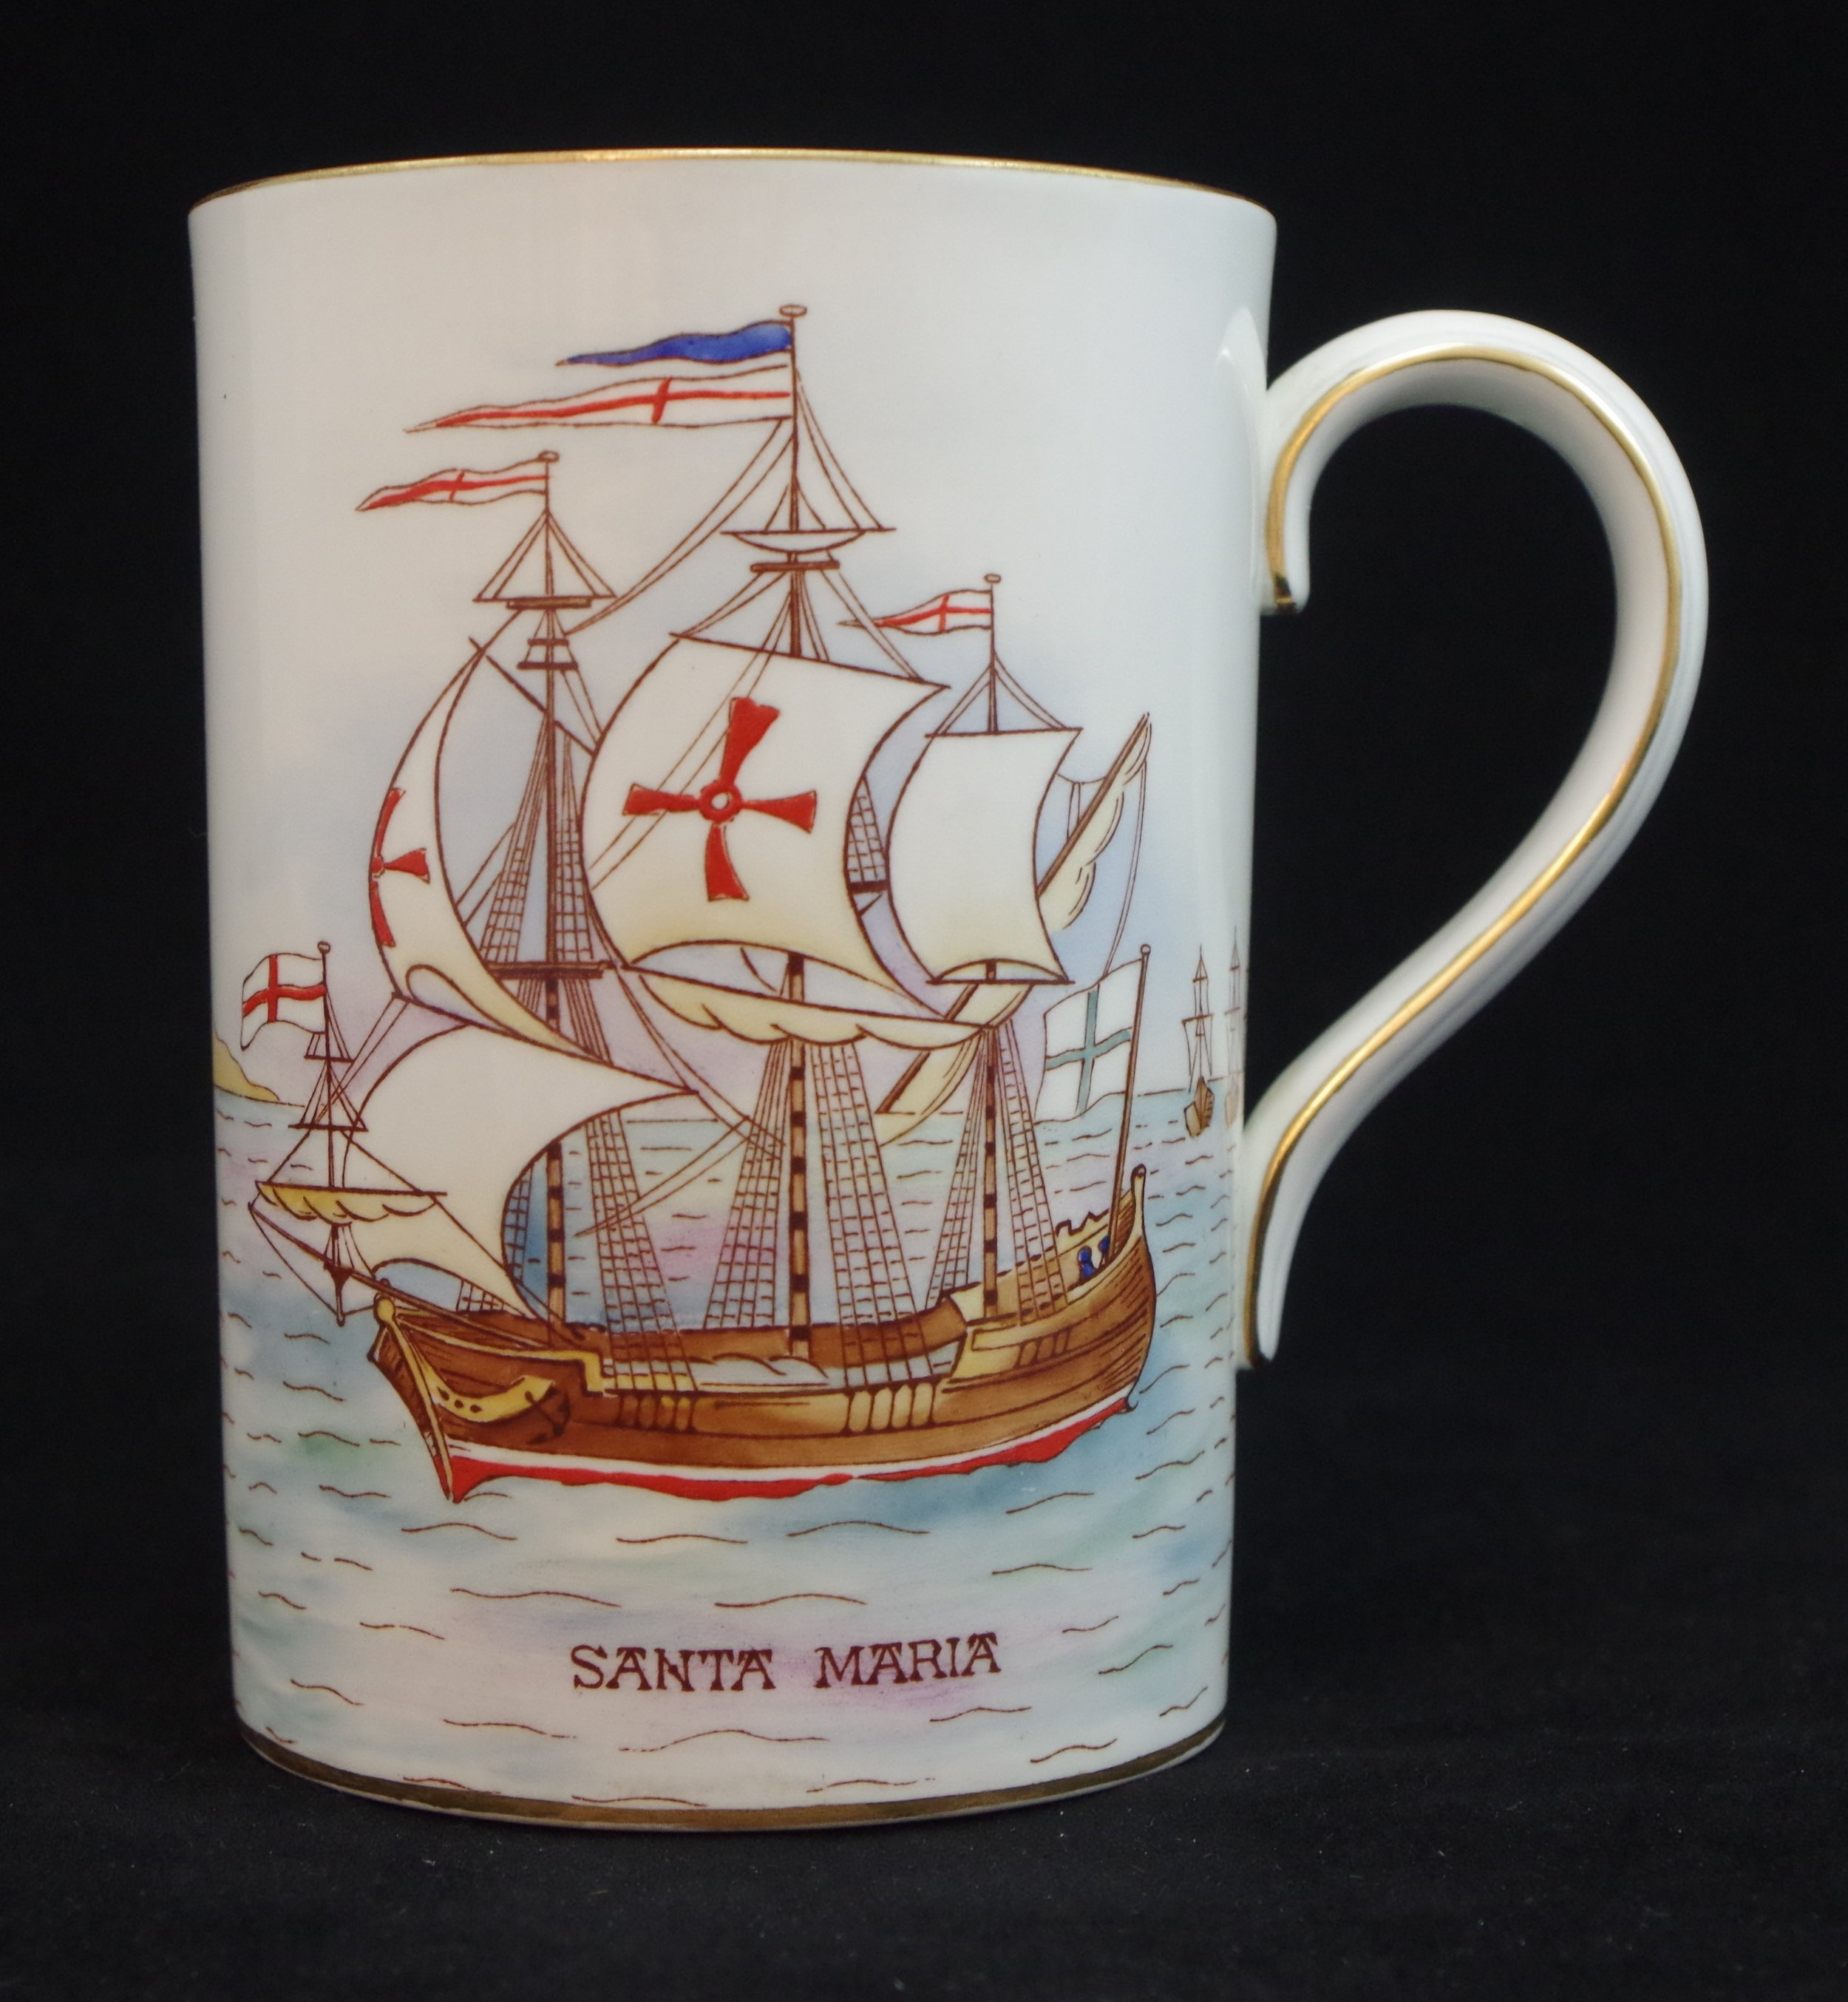 royal-crown-derby-tankard-1928-shape-discovery-of-bahama-islands-by-columbus-1492